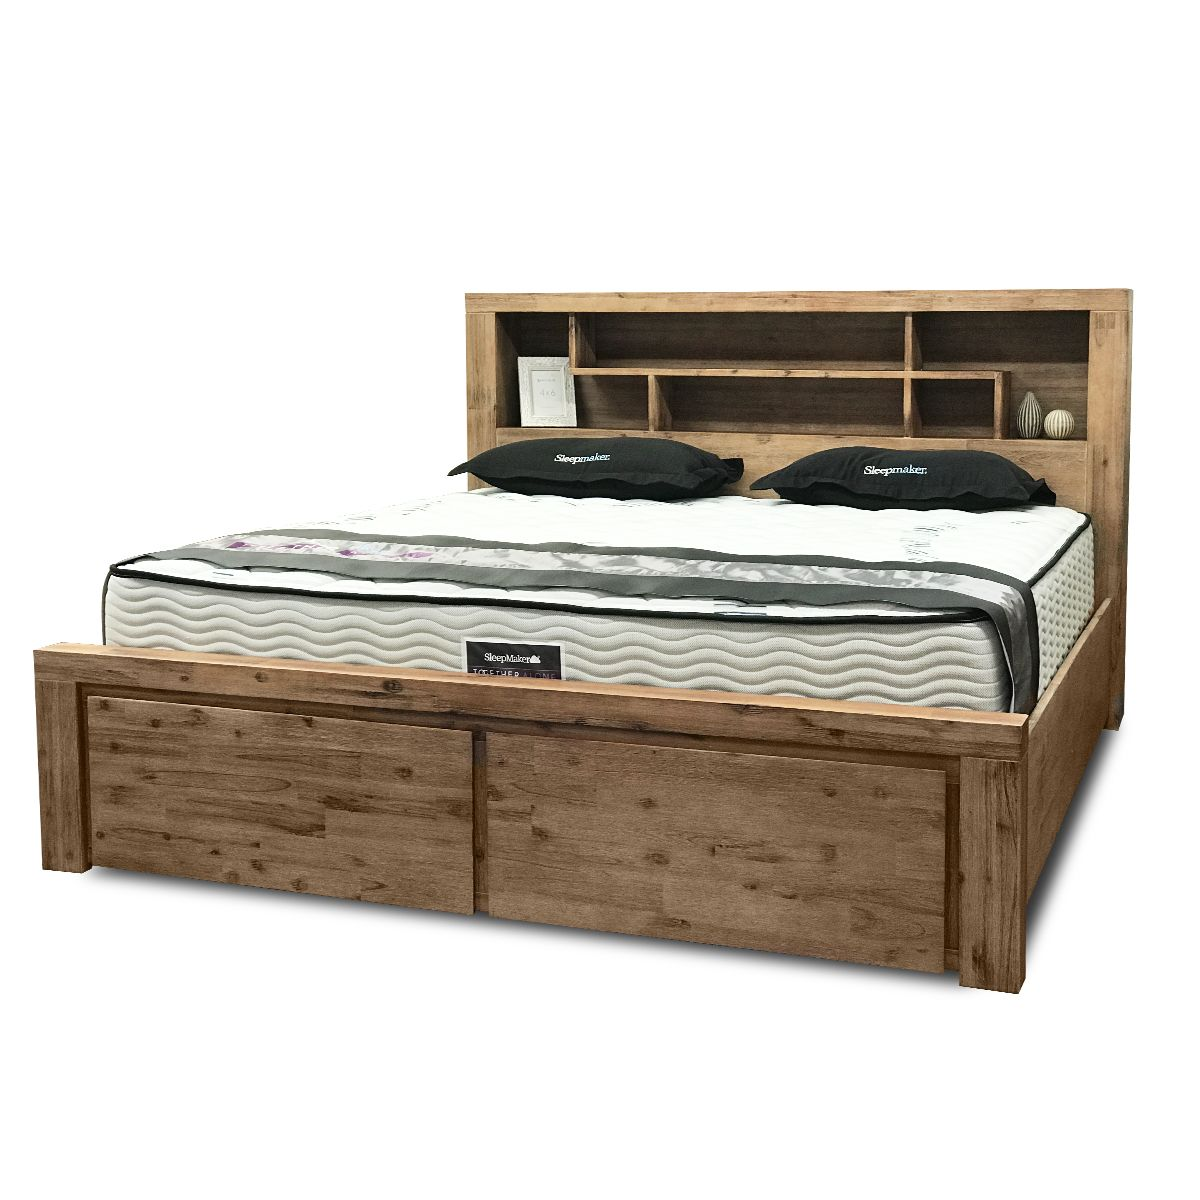 The Cape Storage Bed Frame